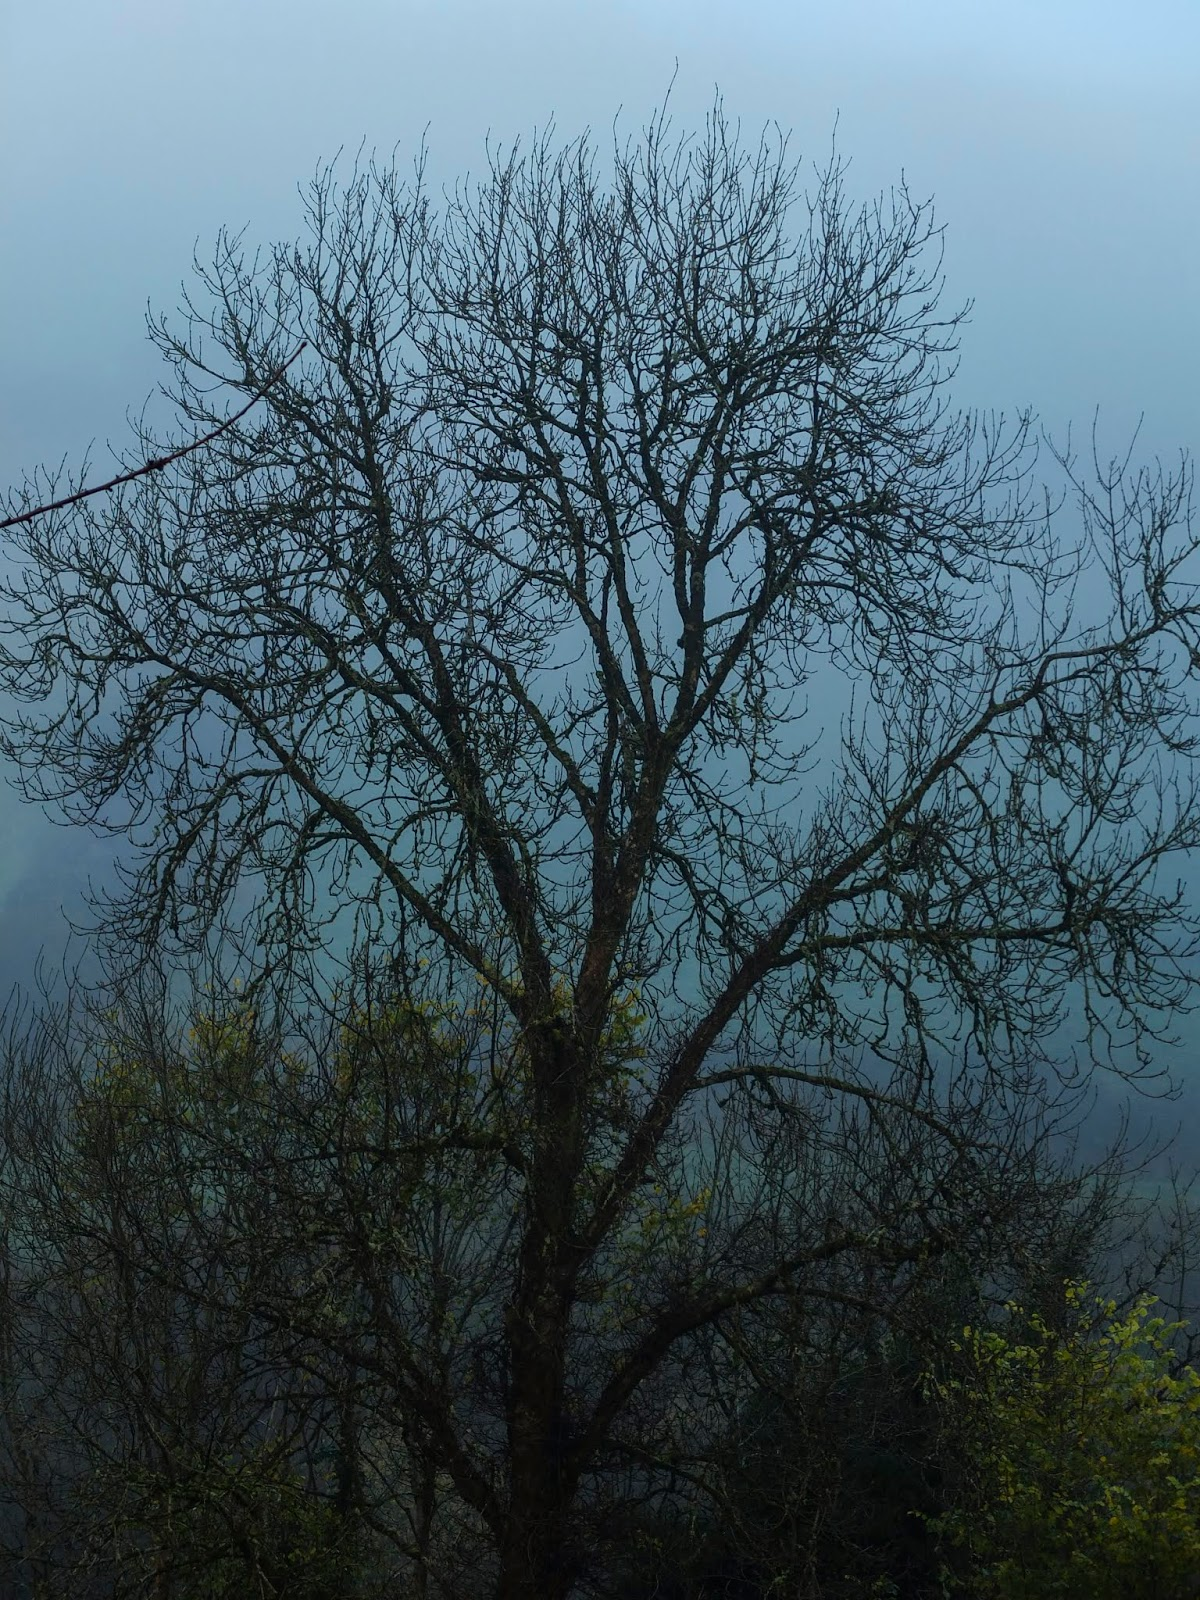 A bare Ash tree wrapped in a thick fog in North County Cork.